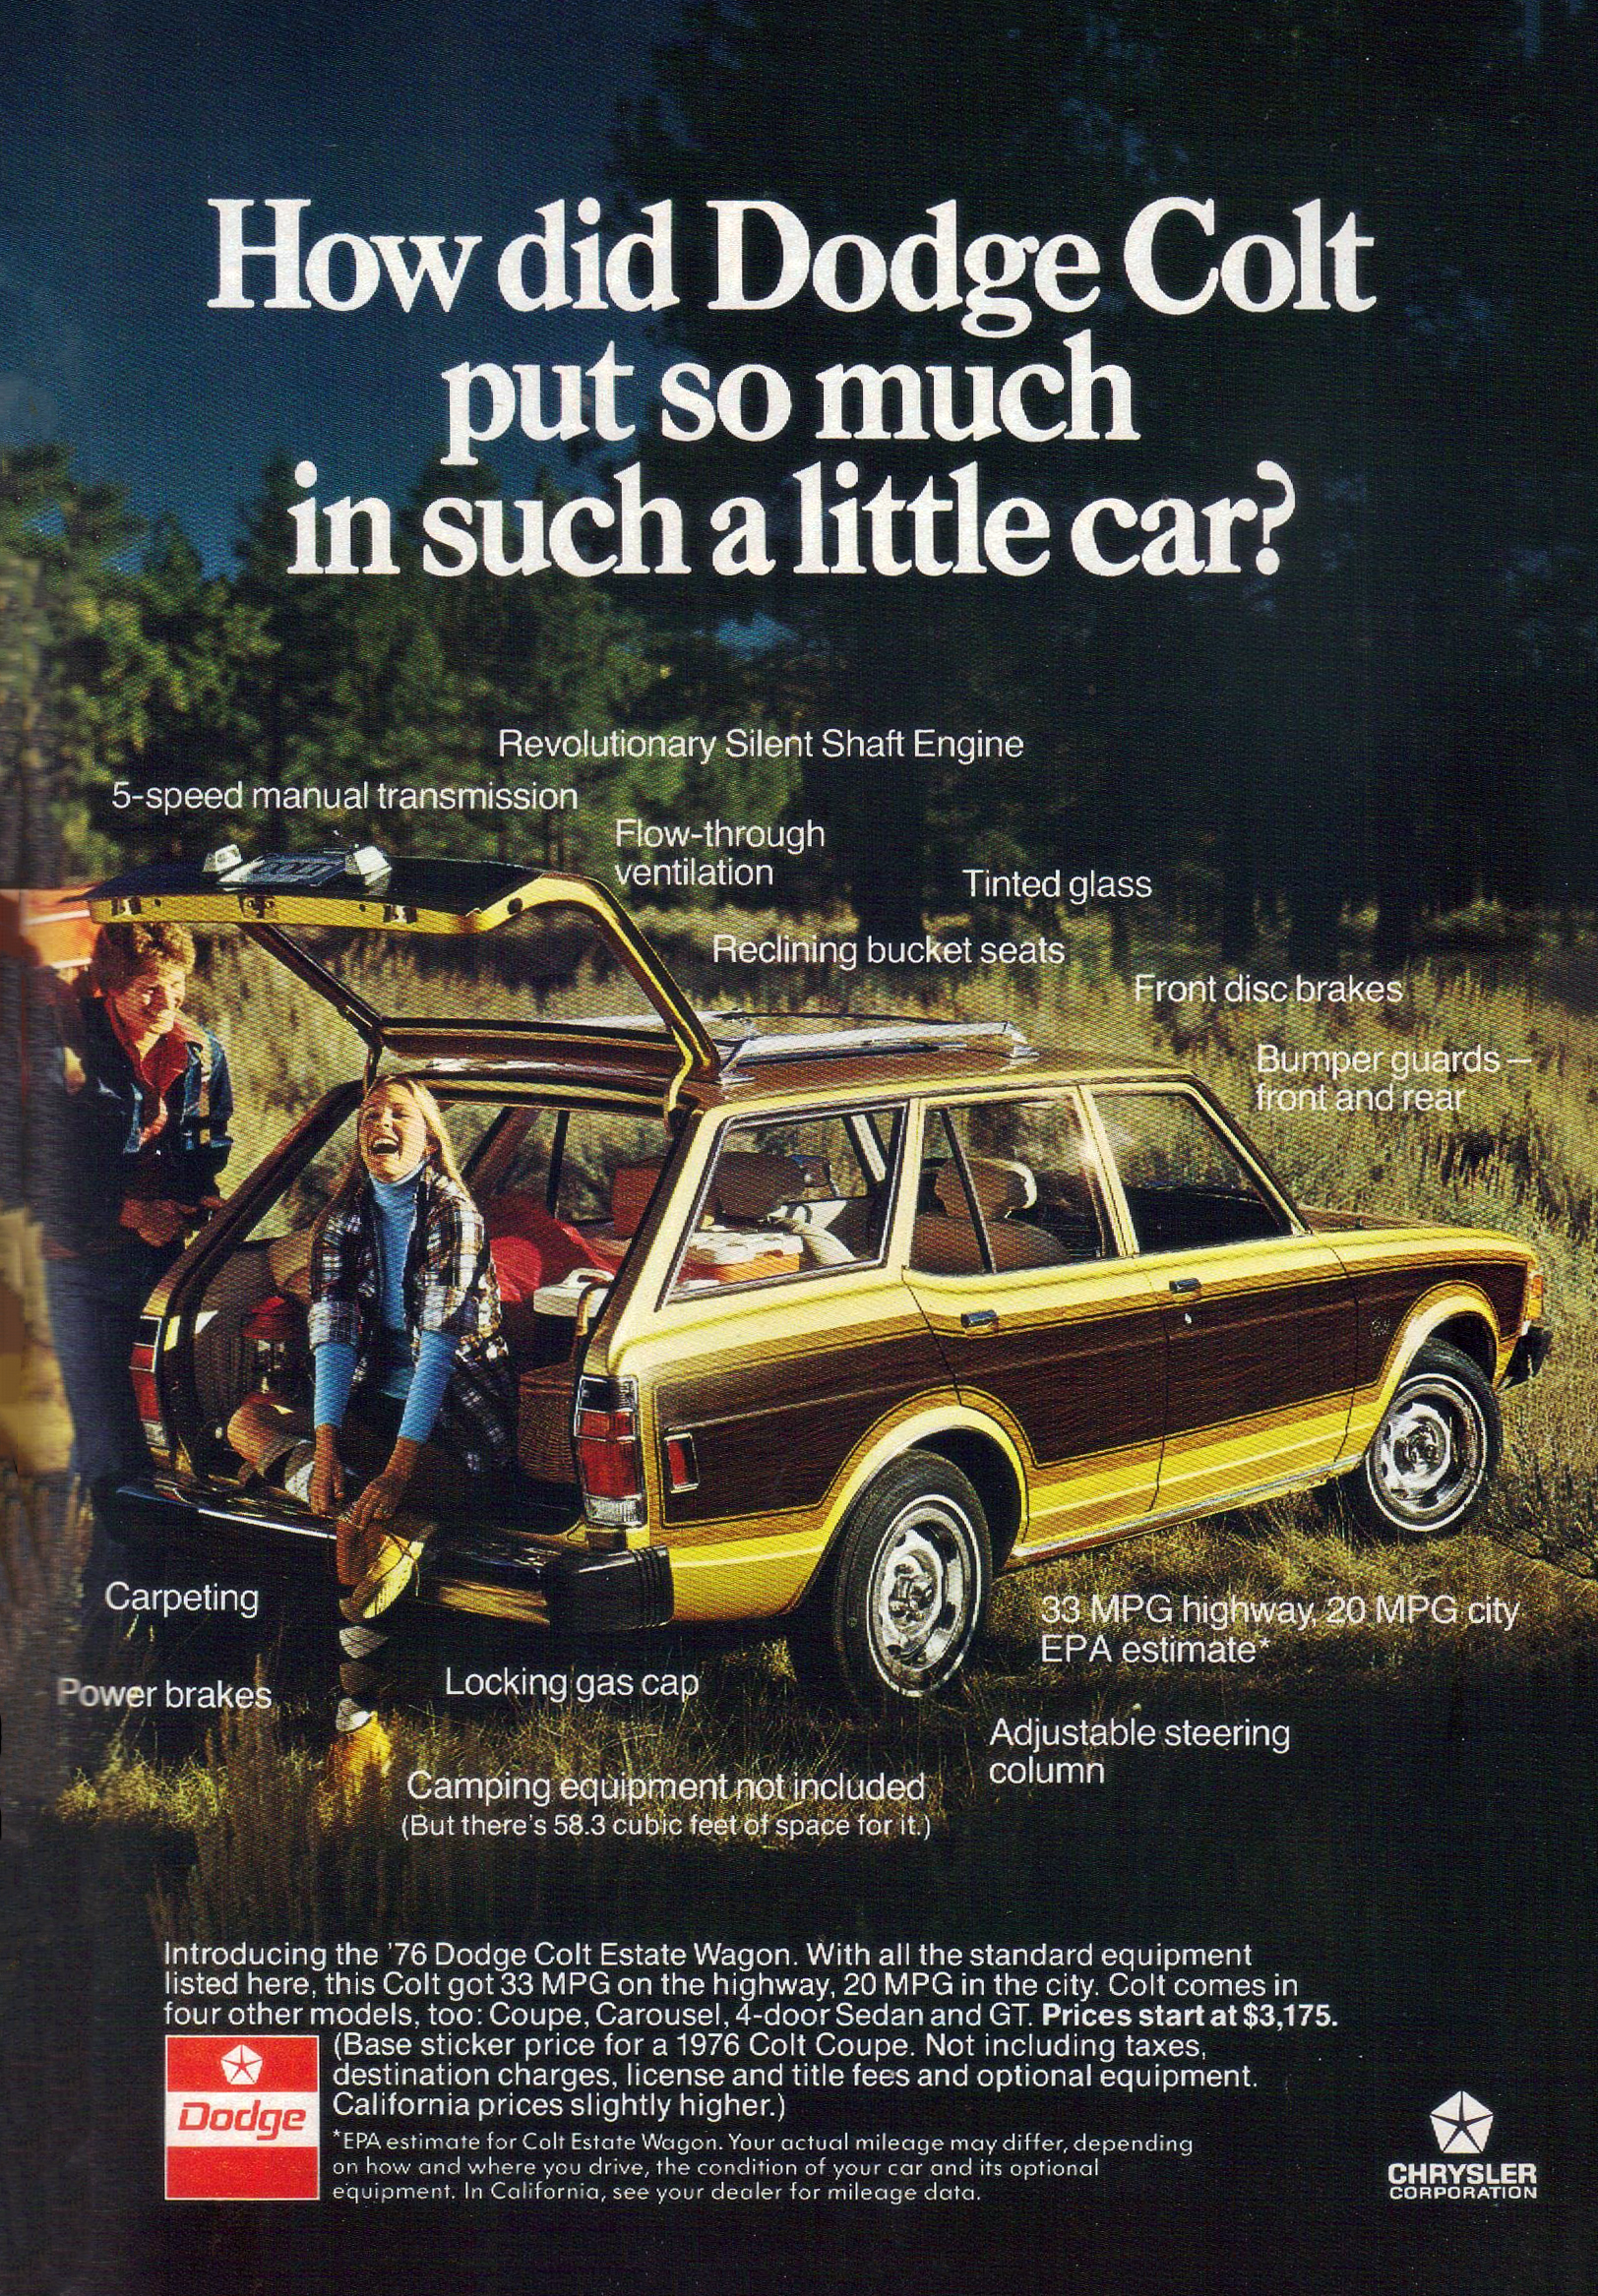 1976 Dodge Colt Estate Wagon Ad